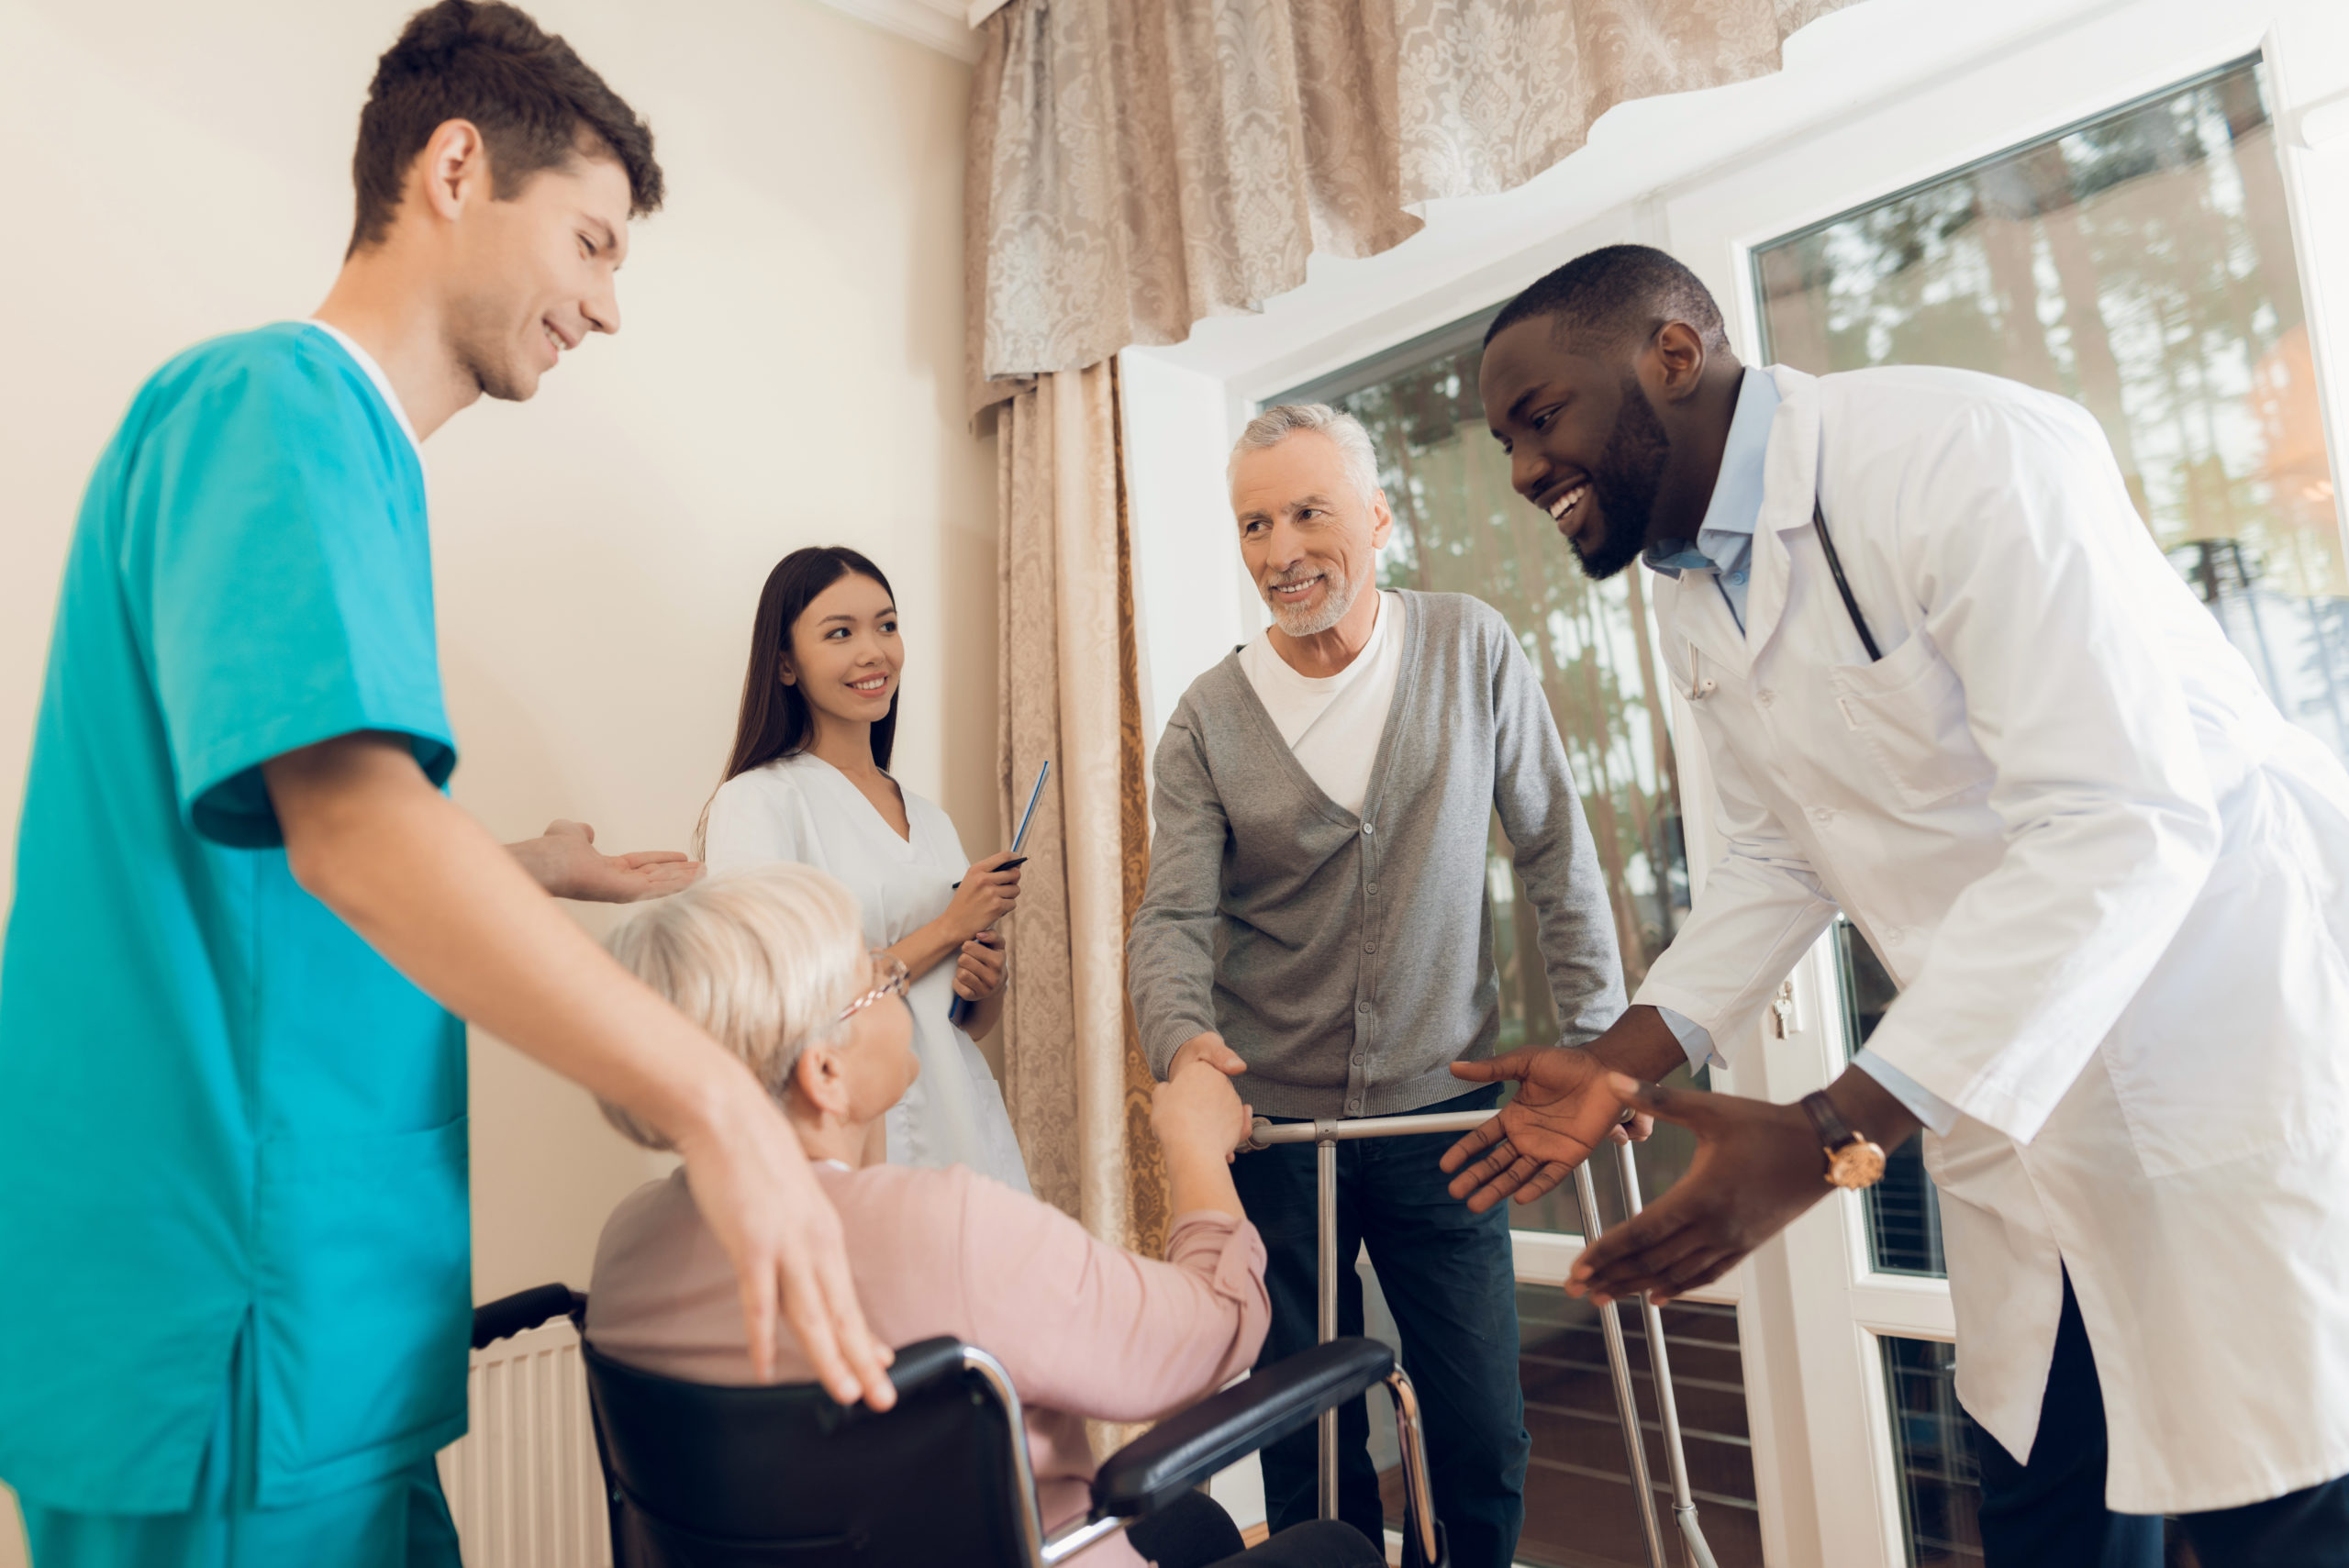 COSHH in Care Homes - All you need to know